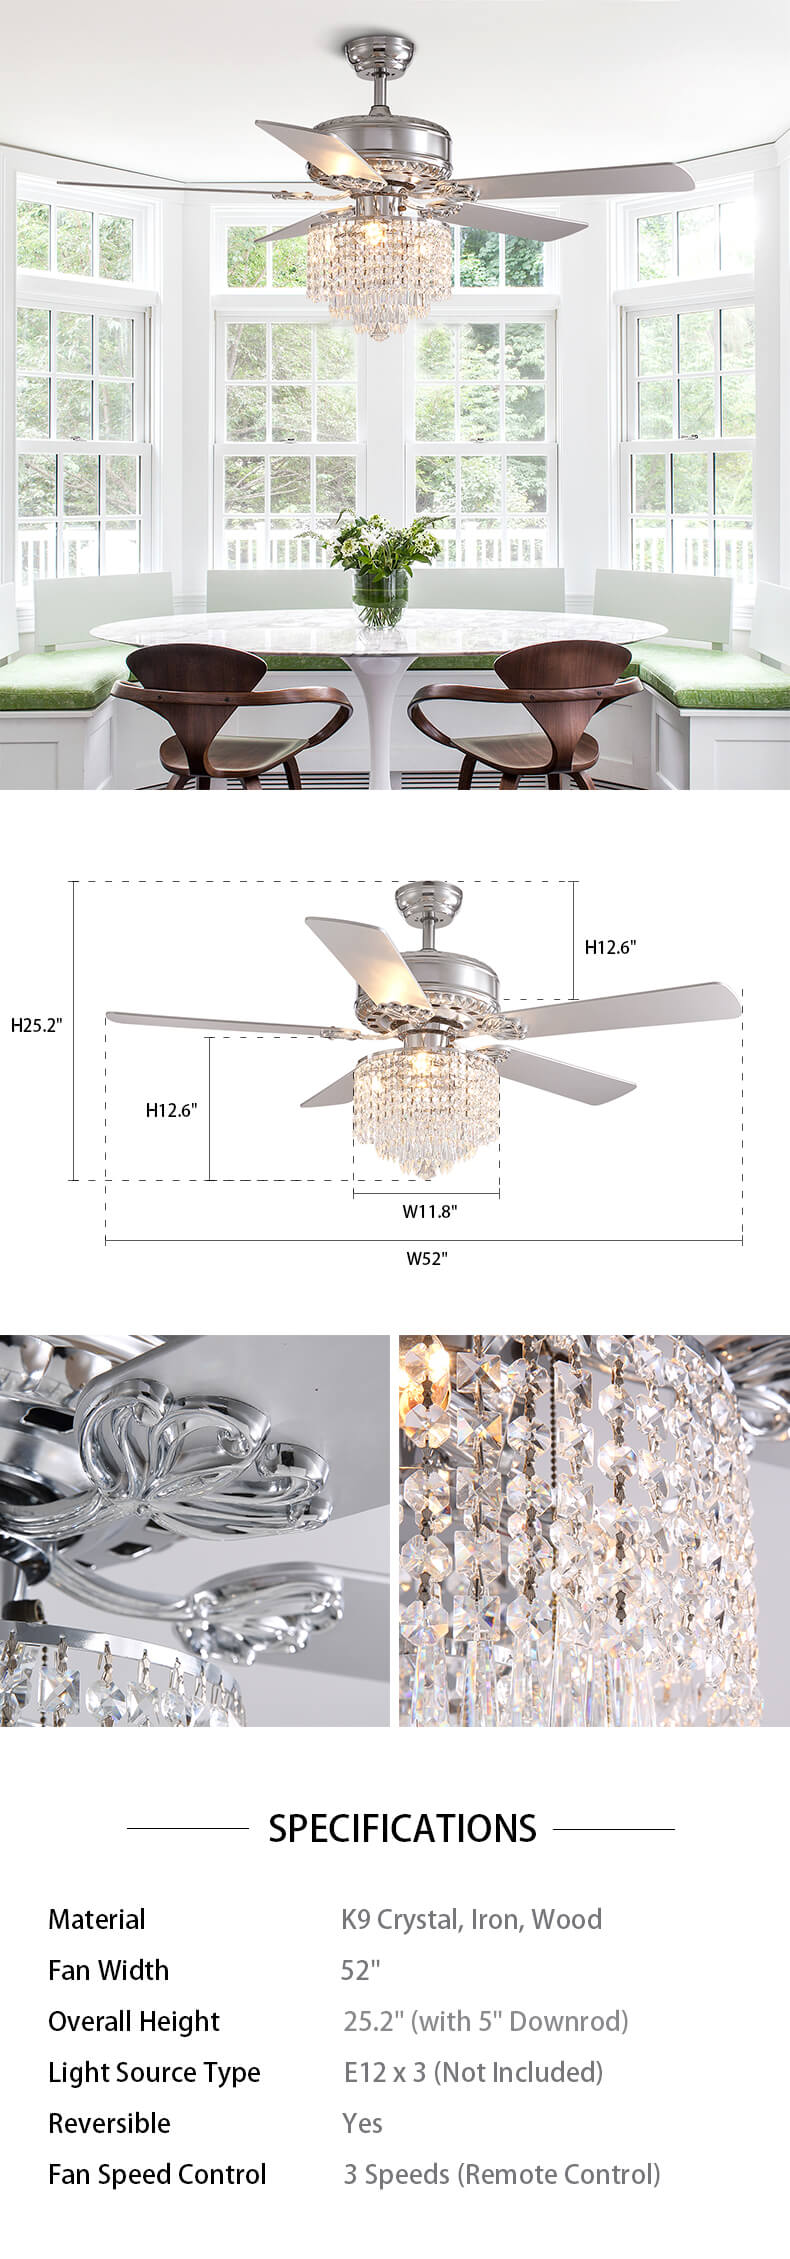 Dimension For Reversible Chandelier Fan with Crystal and Wood Blades